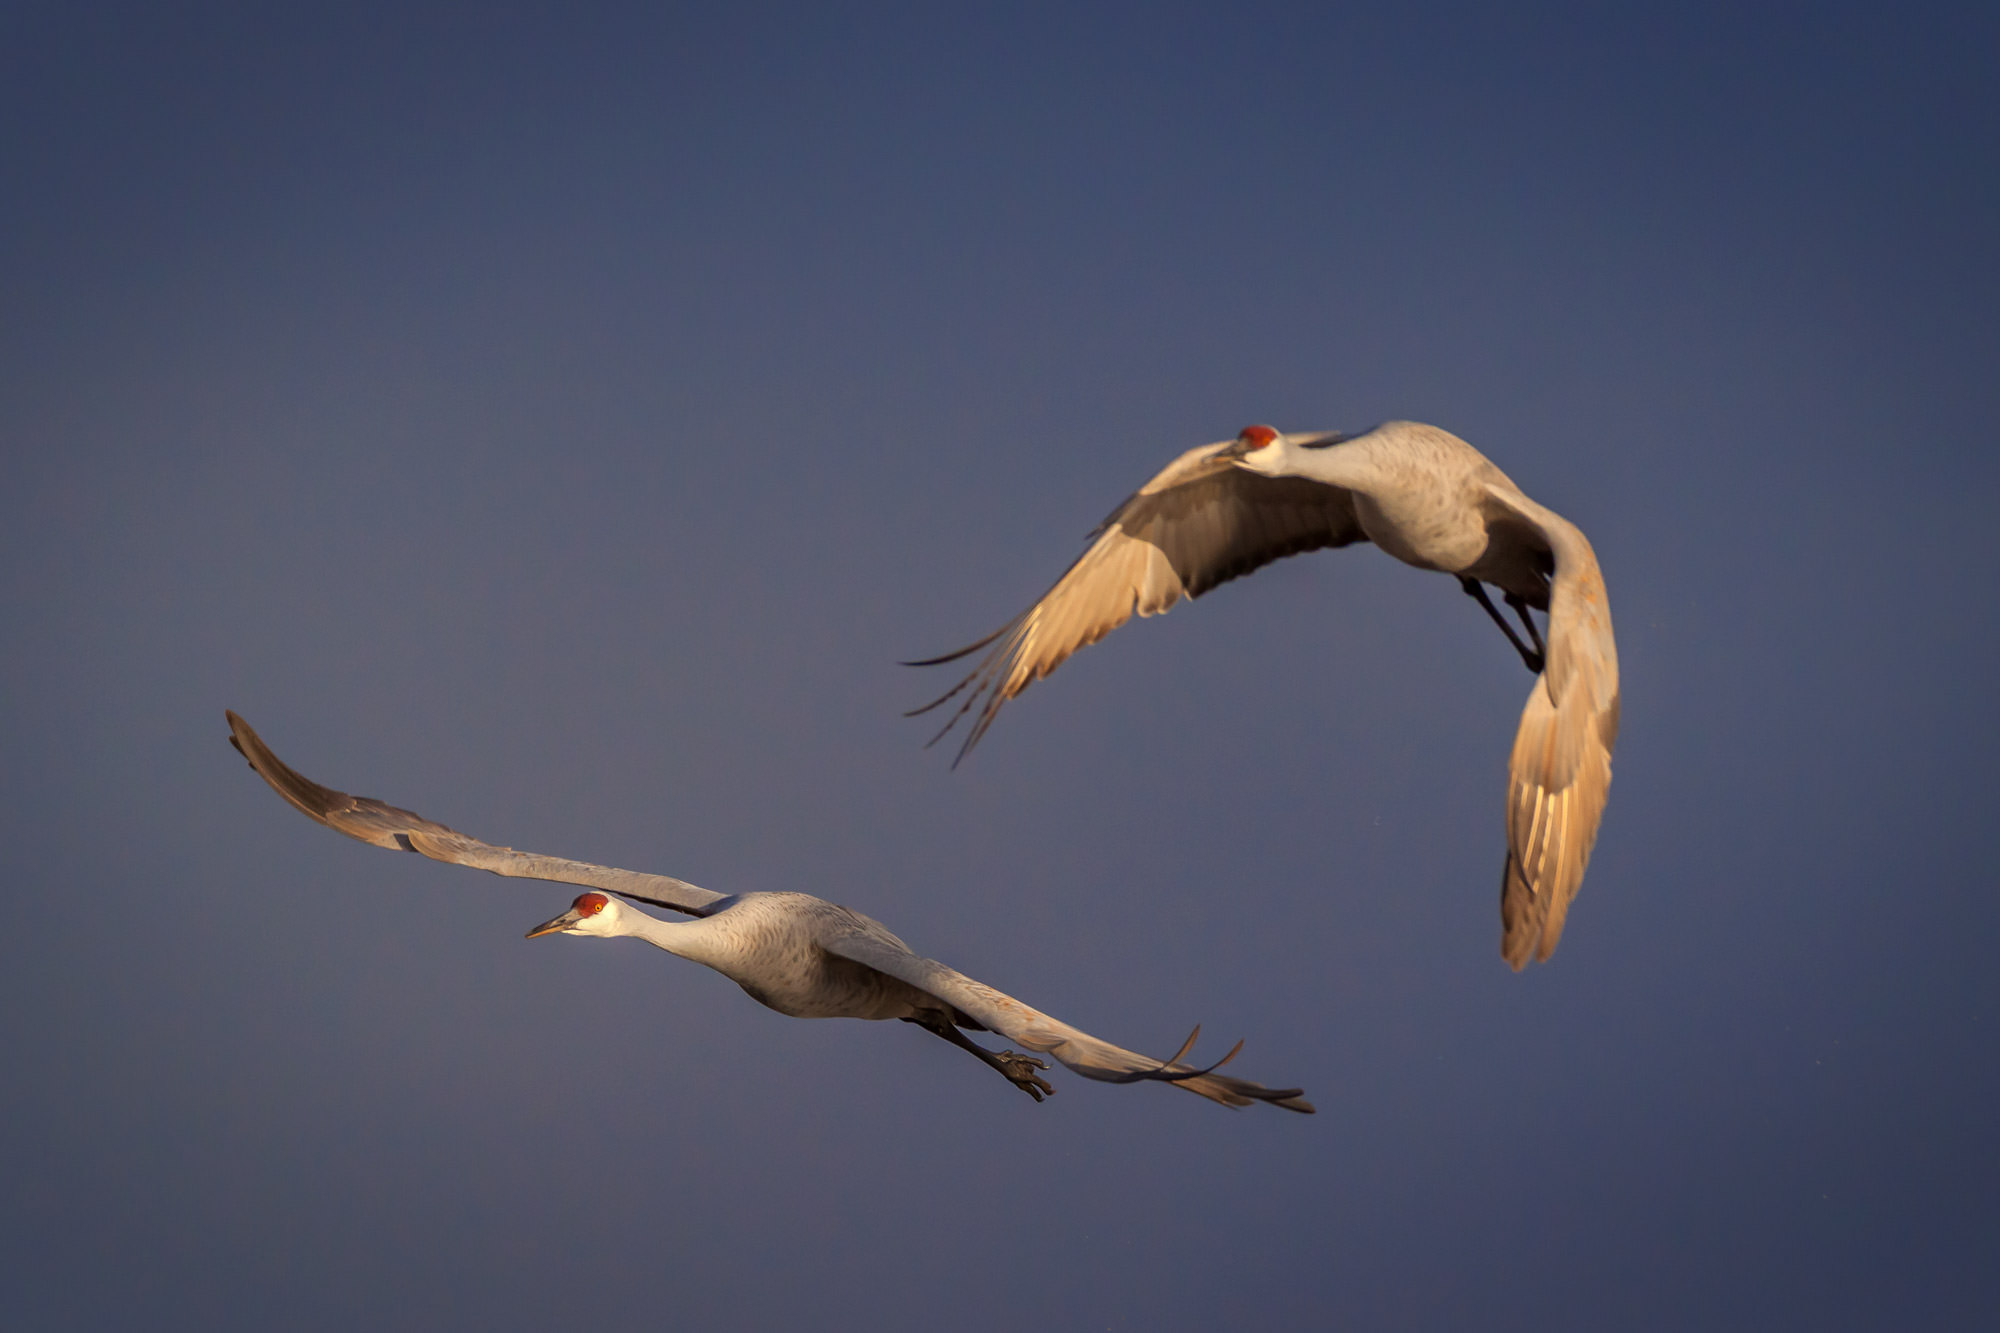 Sandhill Crane, New Mexico, Bosque del Apache, flight, limited edition, photograph, fine art, wildlife, photo